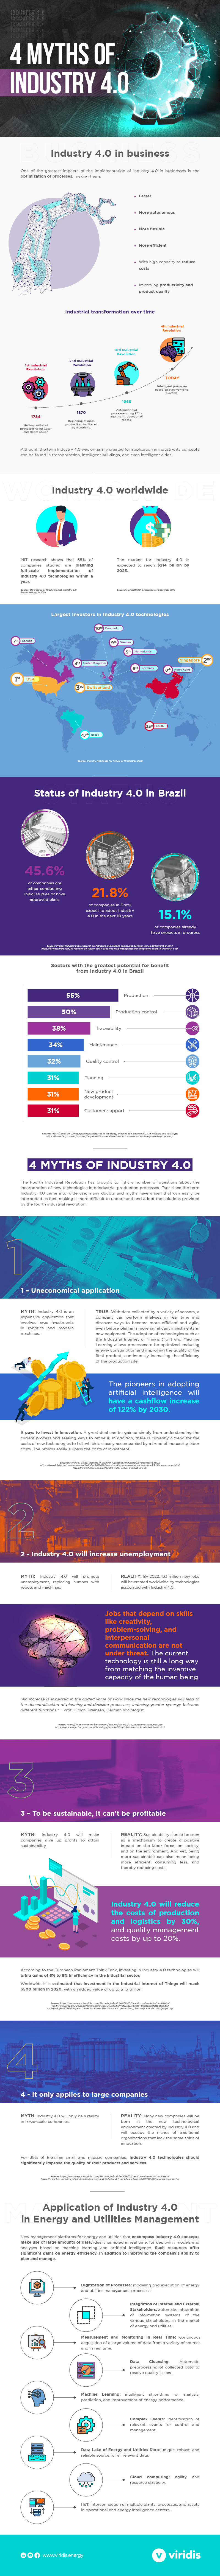 infographic industrial revolution 4.0